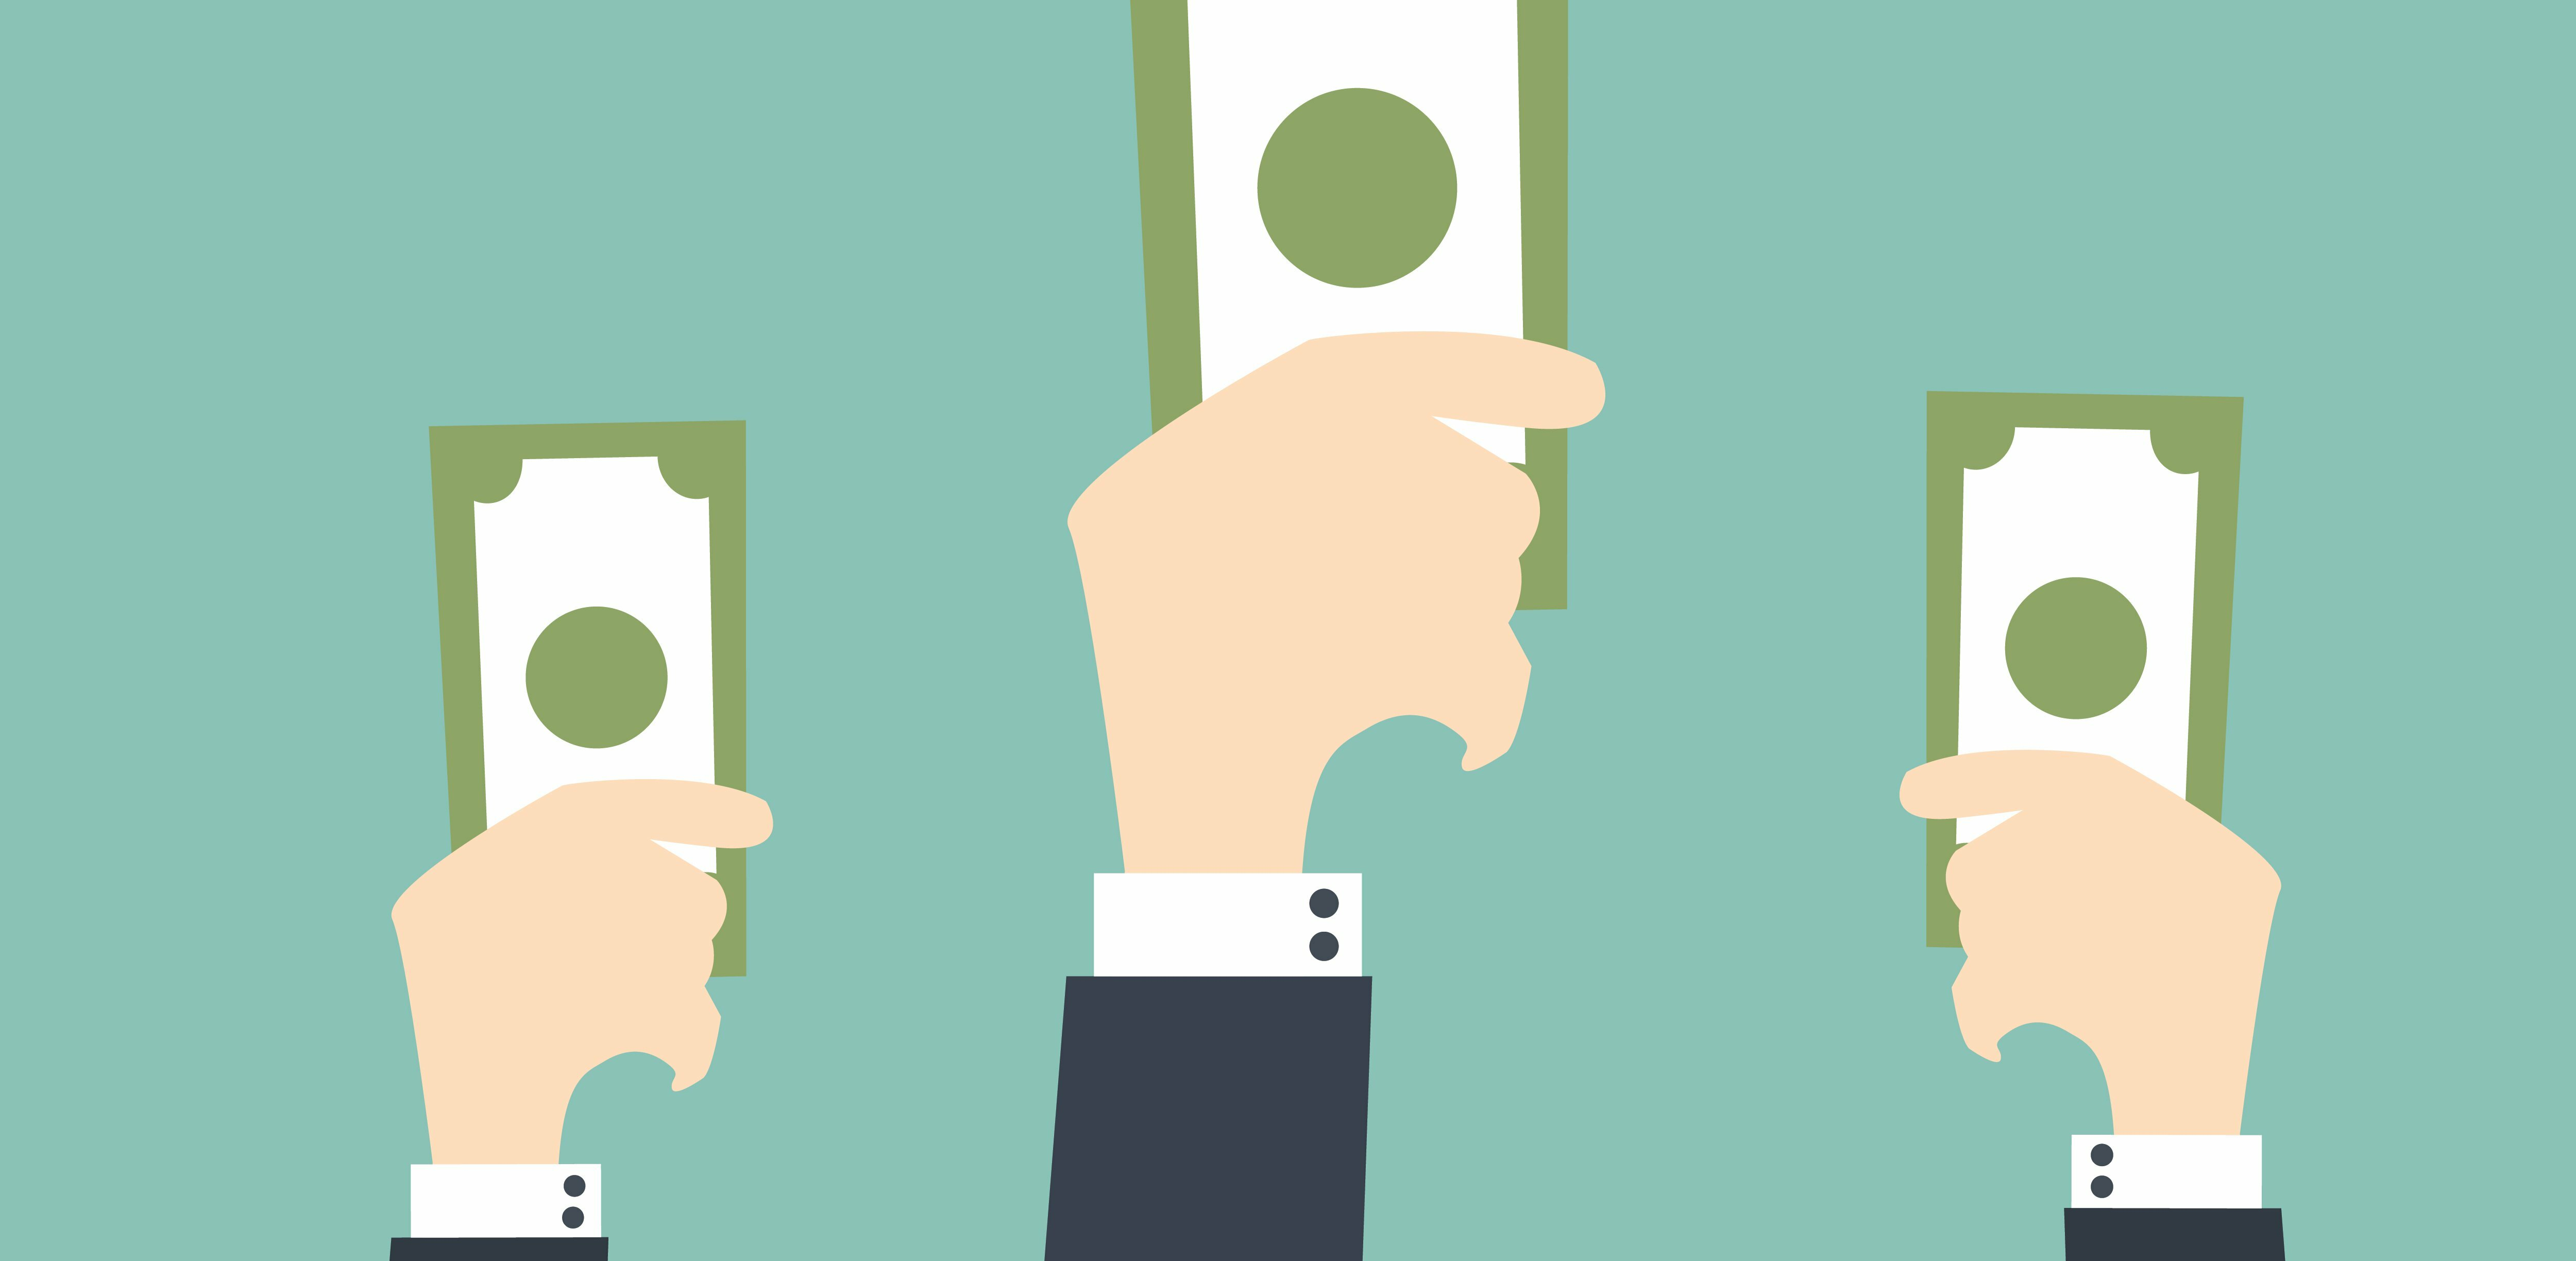 3 Simple Steps to Running a Successful Crowdfunding Campaign